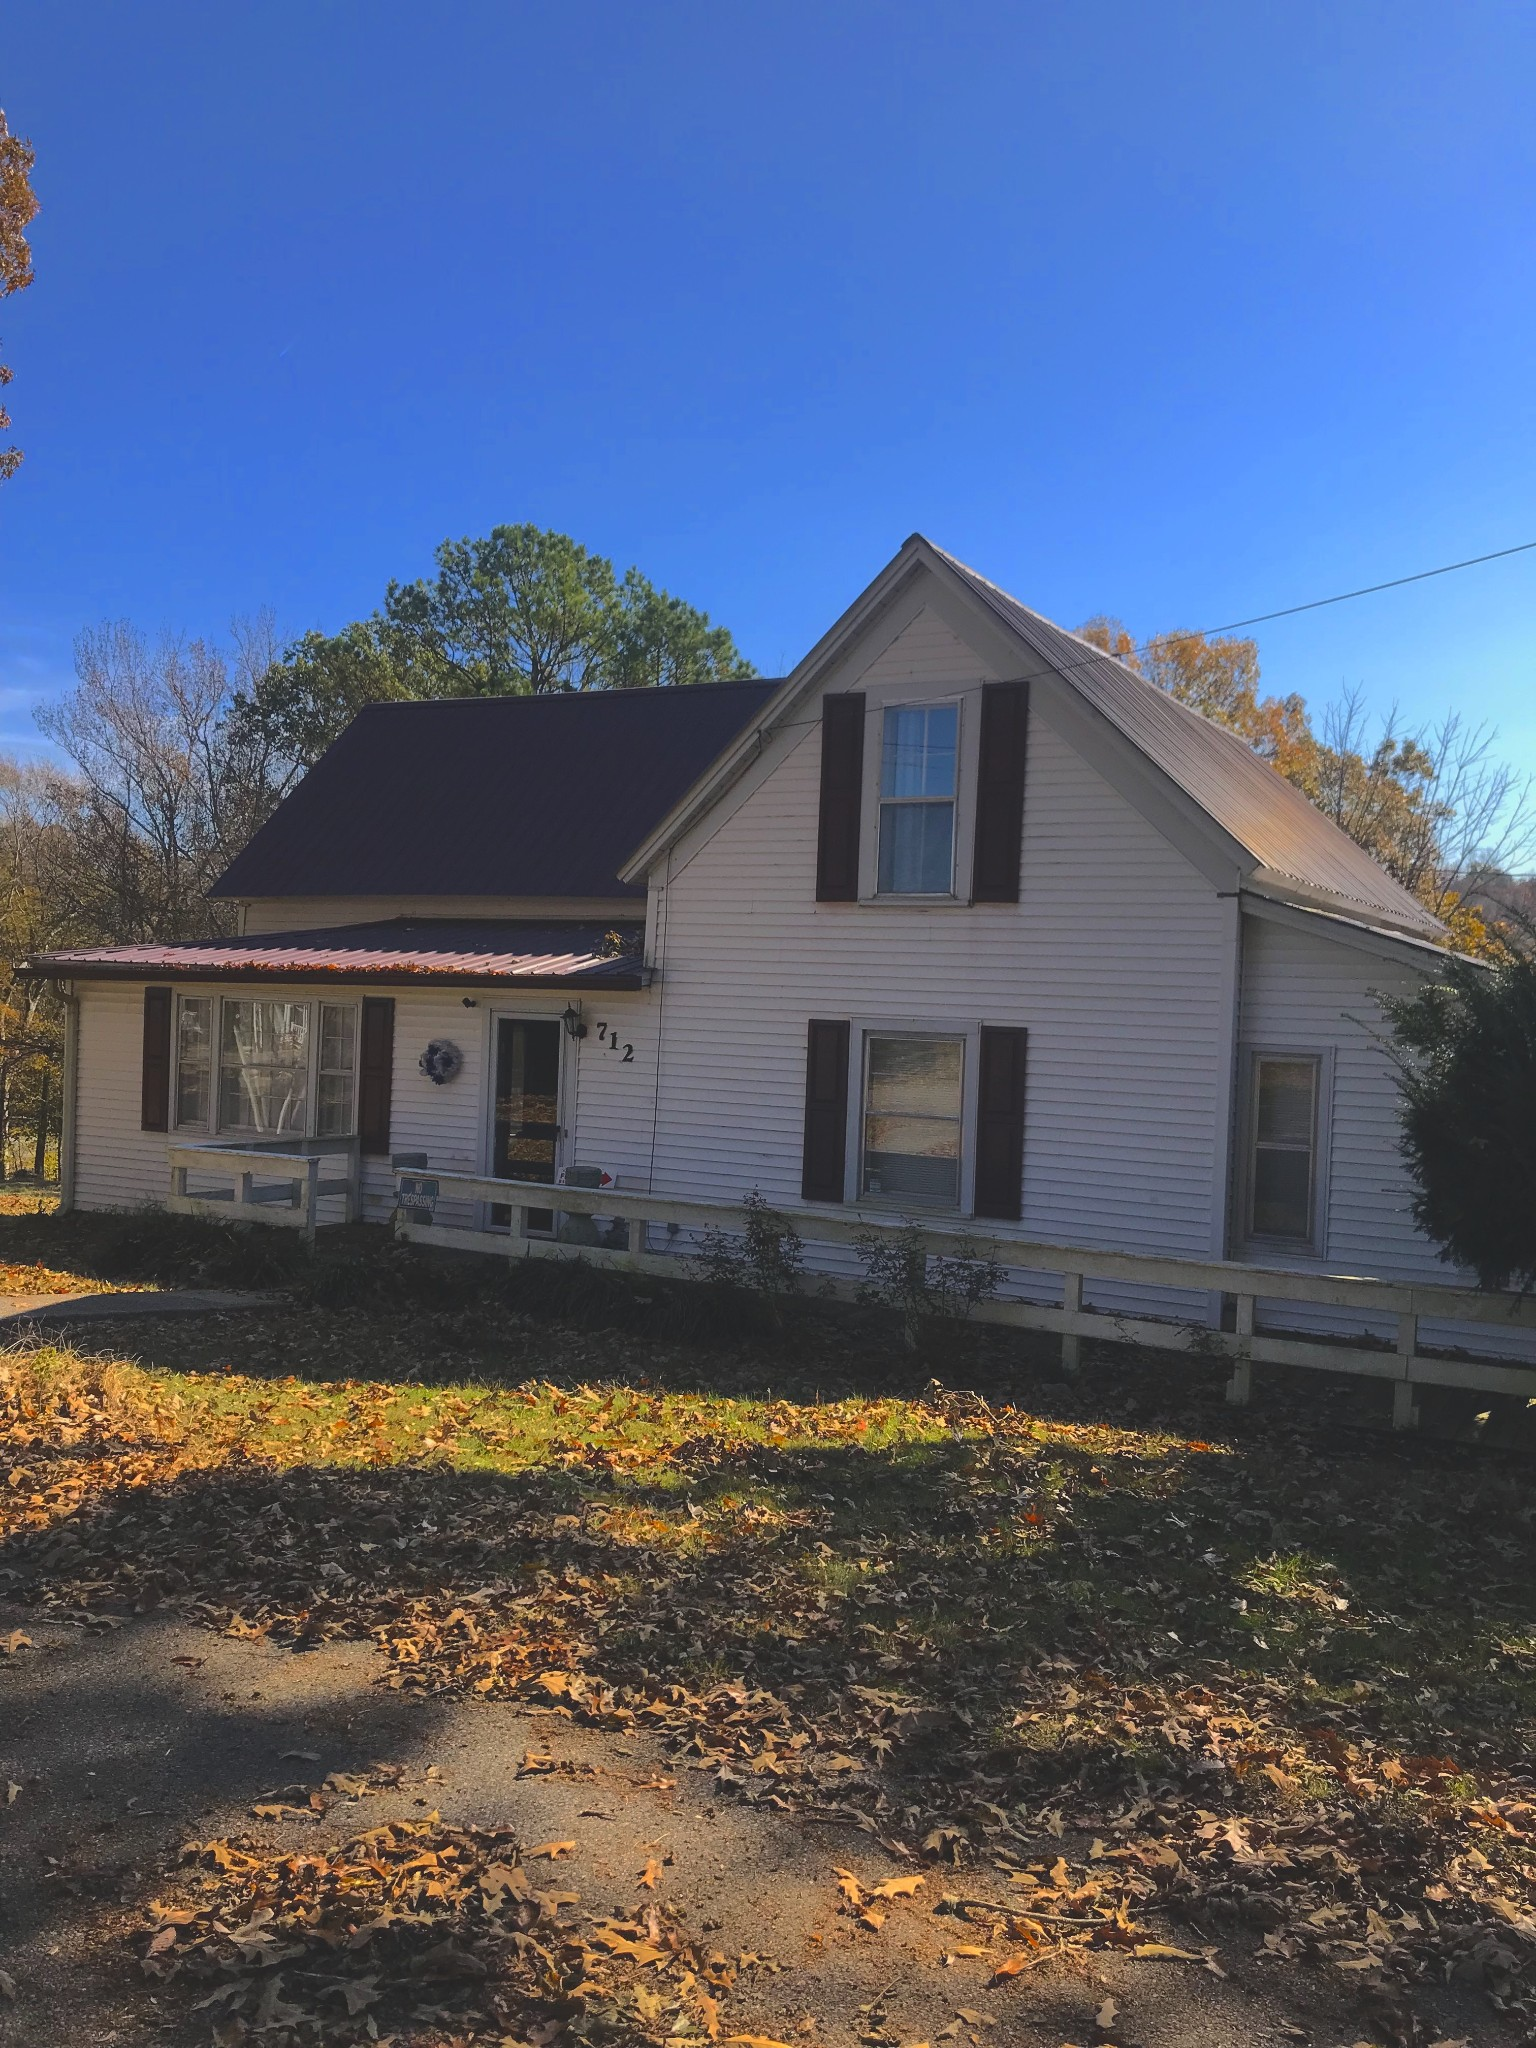 712 Thomas Ave, Cumberland City, TN 37050 - Cumberland City, TN real estate listing